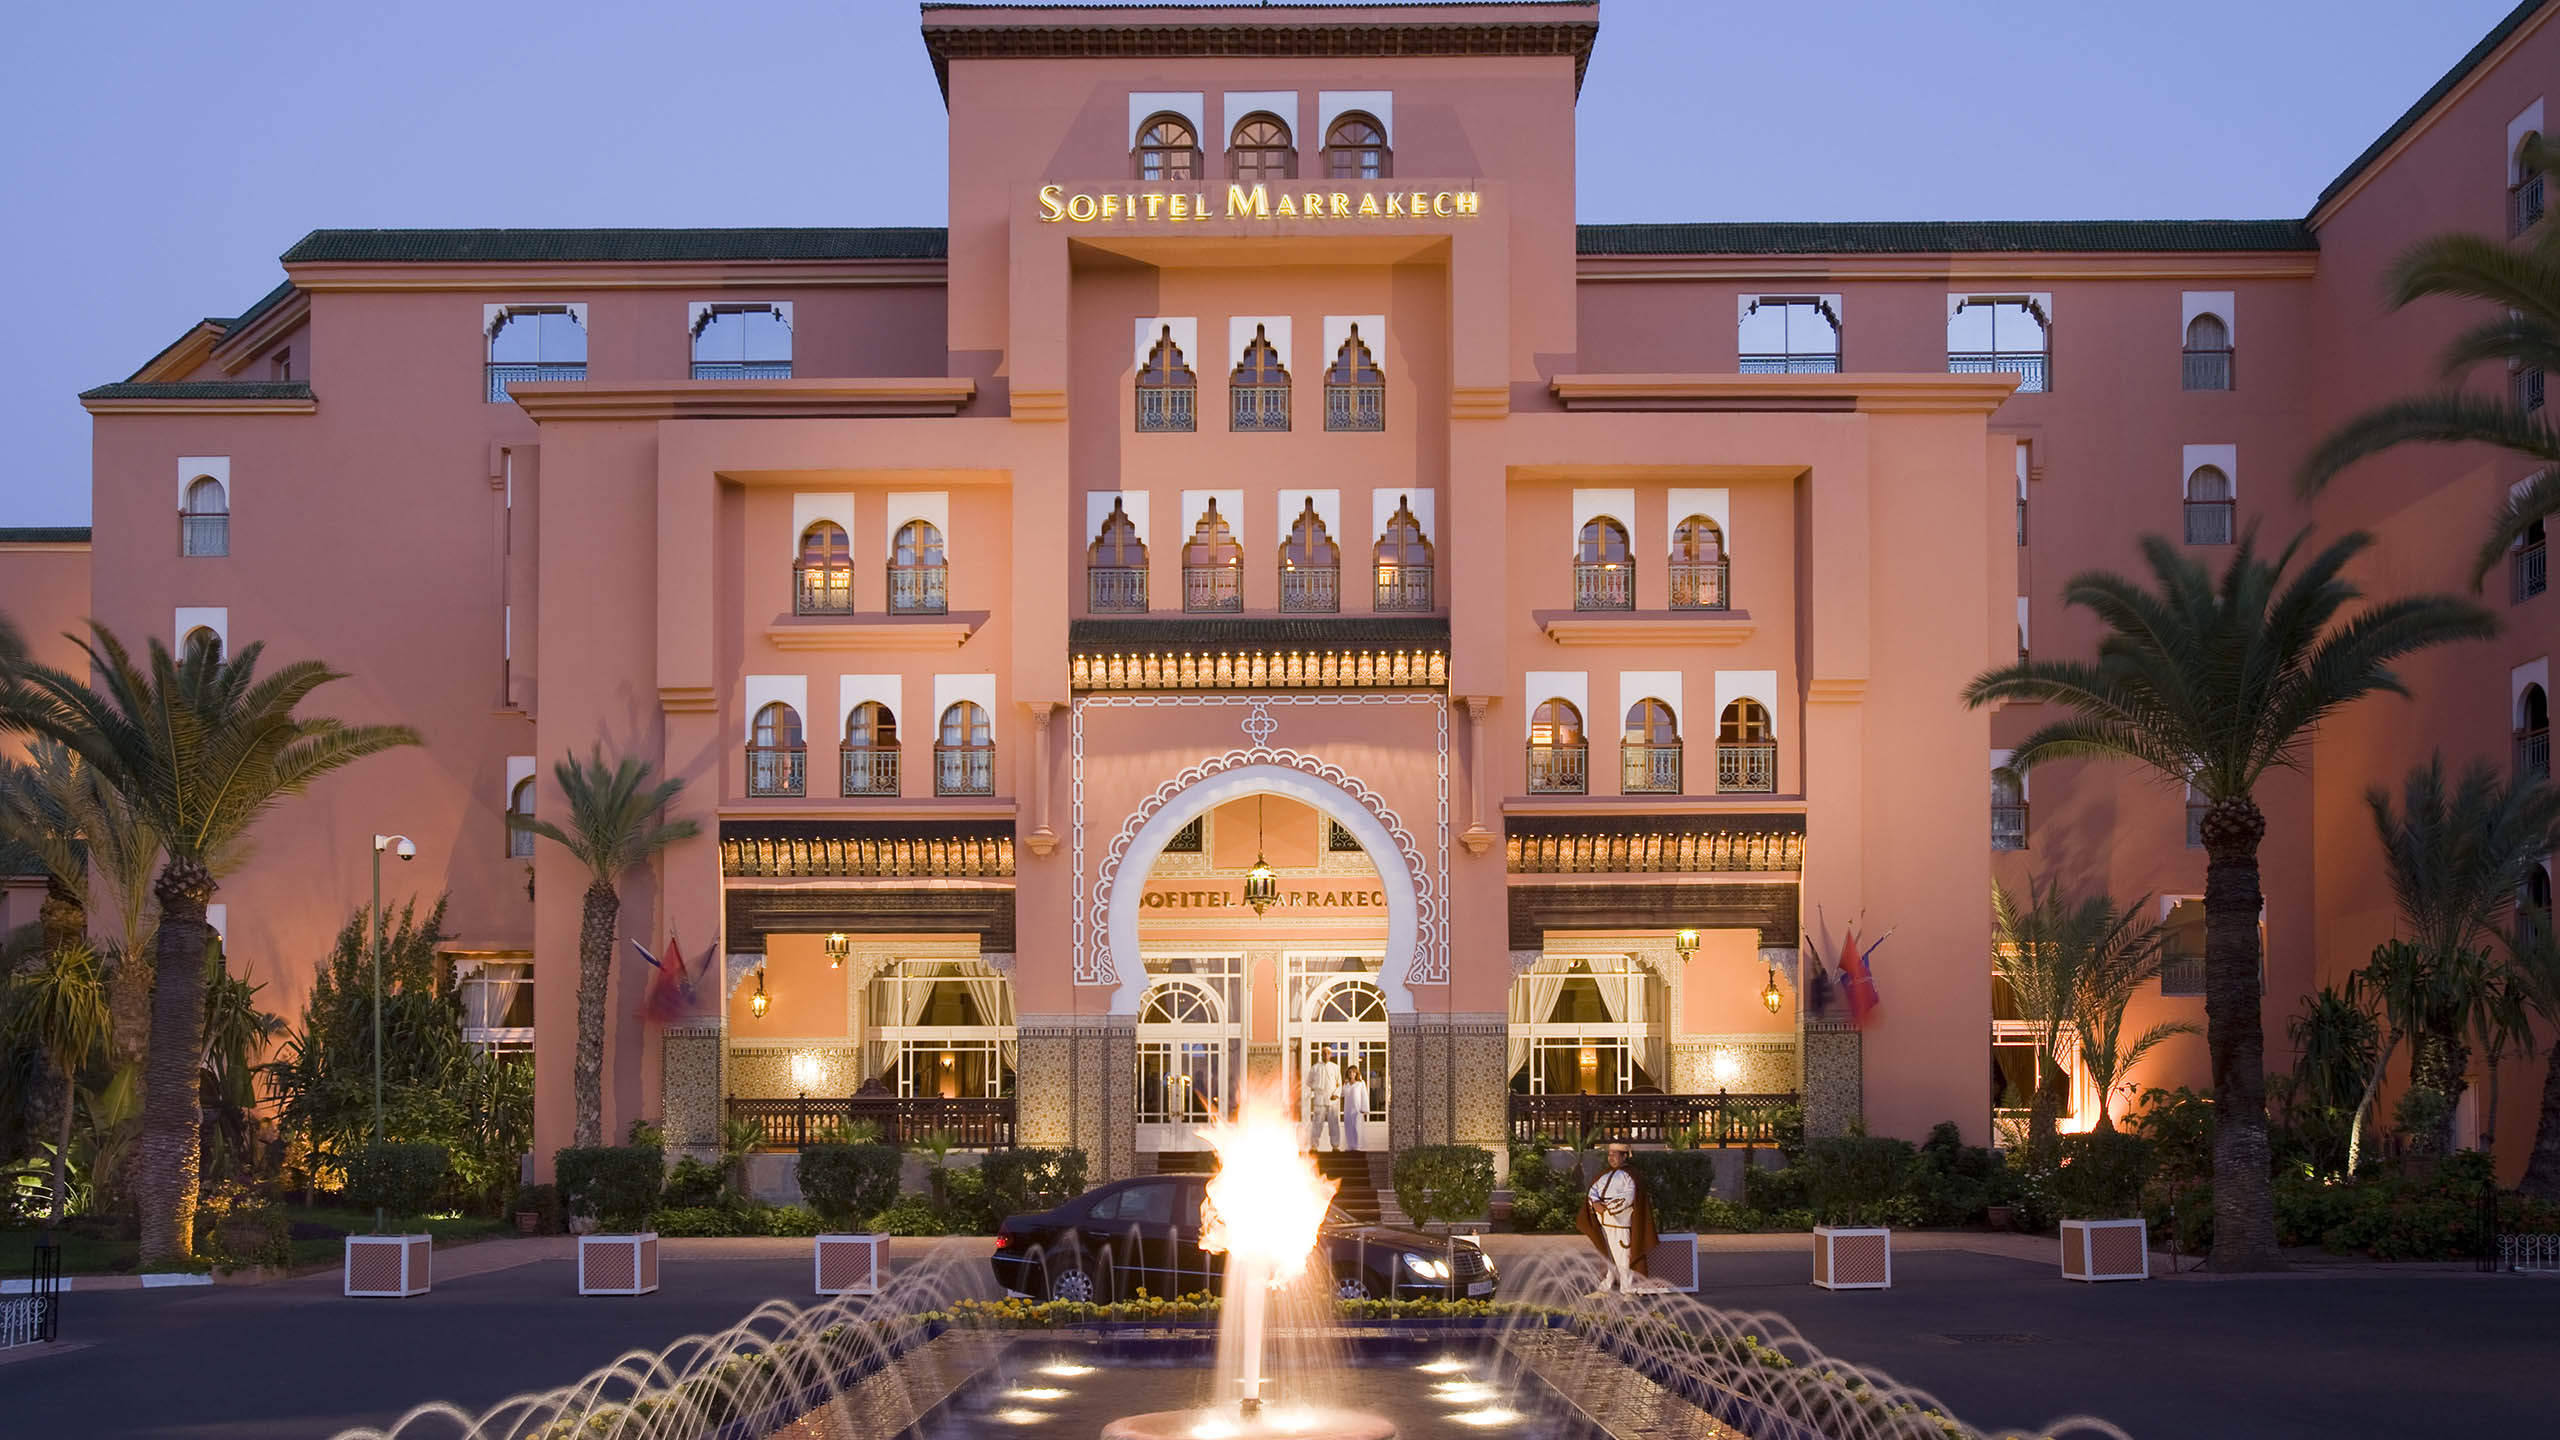 Hotel Sofitel Marrakech Booking